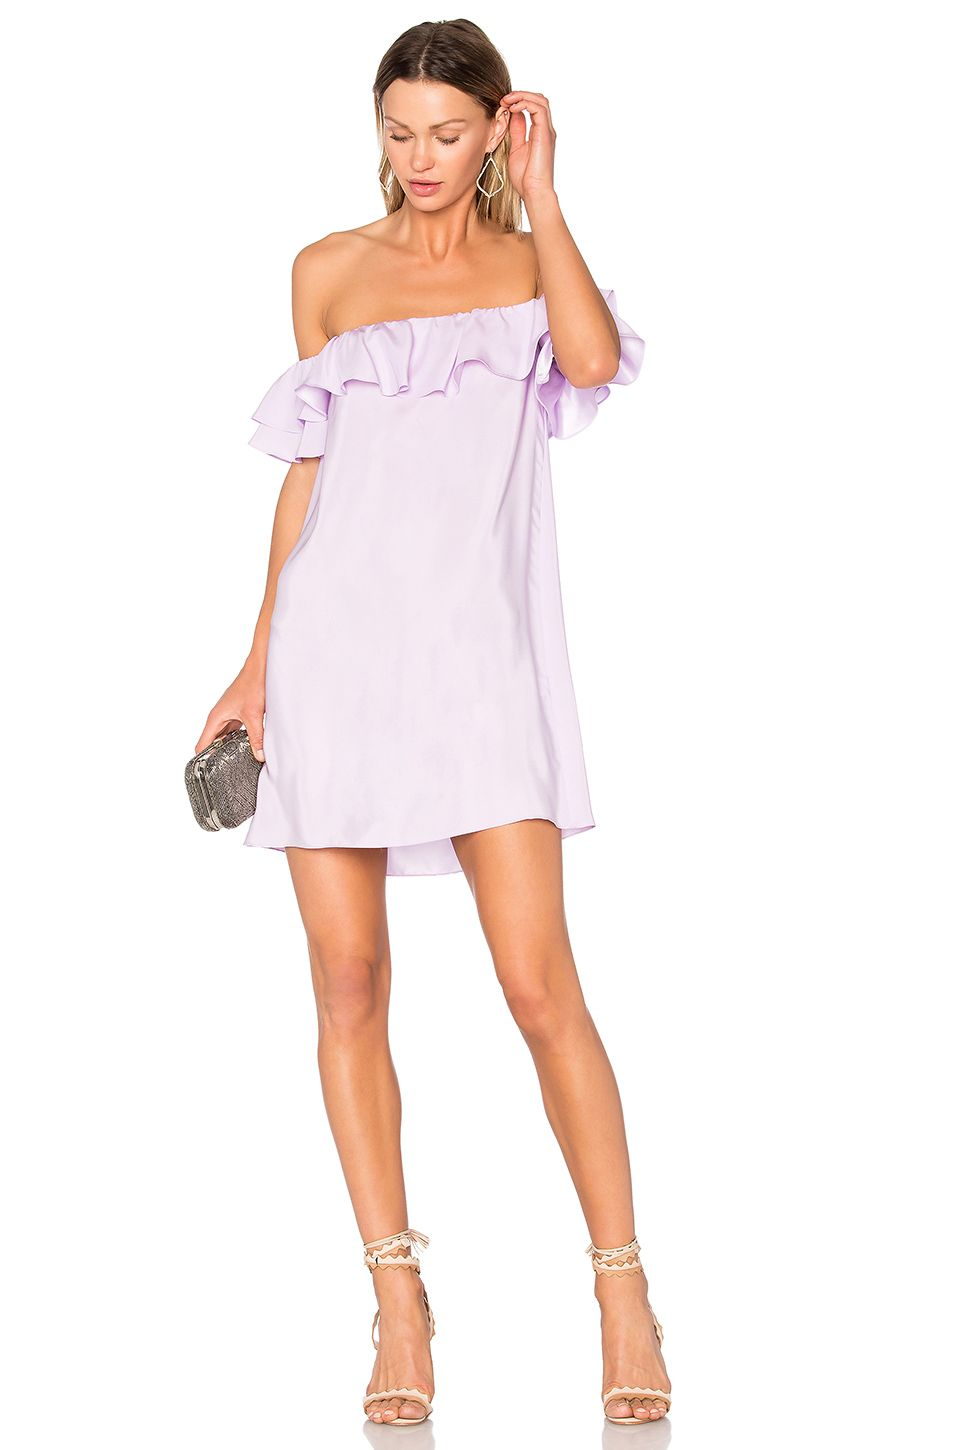 I need a dress to wear to a summer wedding  Wear this pastel purple ruffle off the shoulder dress  Fashion